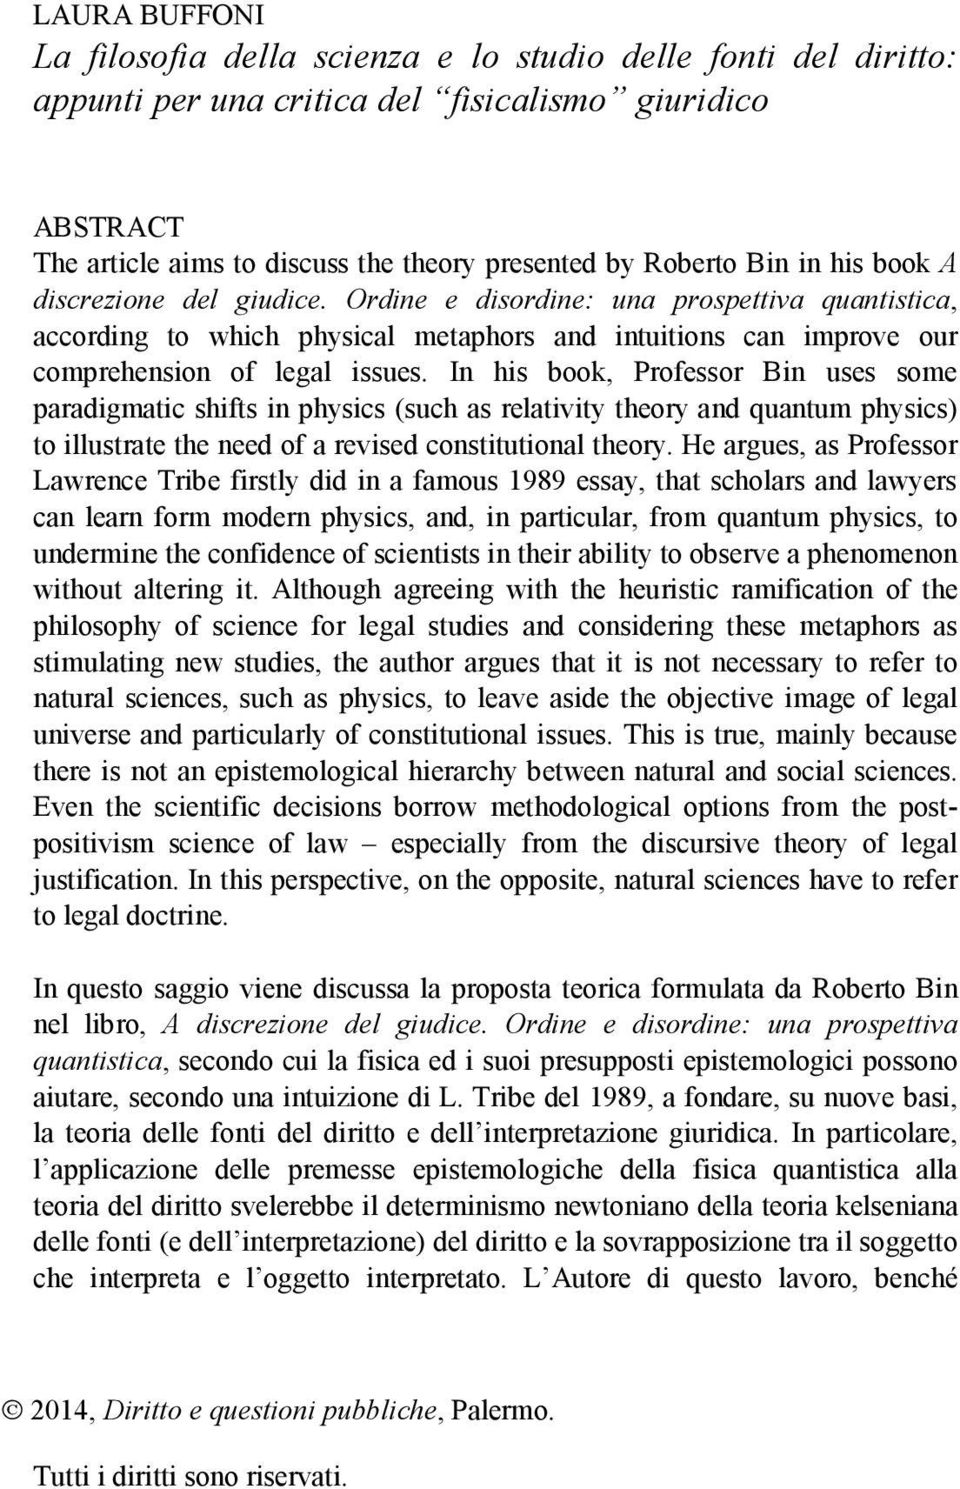 physics and philosophydo the philosophical critic essay It includes a selection of recent philosophical work on this topic, accompanied by a variety of essays by philosophers and theologians to further the discussion the book is divided into four parts, the first three dealing in turn with the three most prominent models for understanding the relations between the persons of the trinity: social .